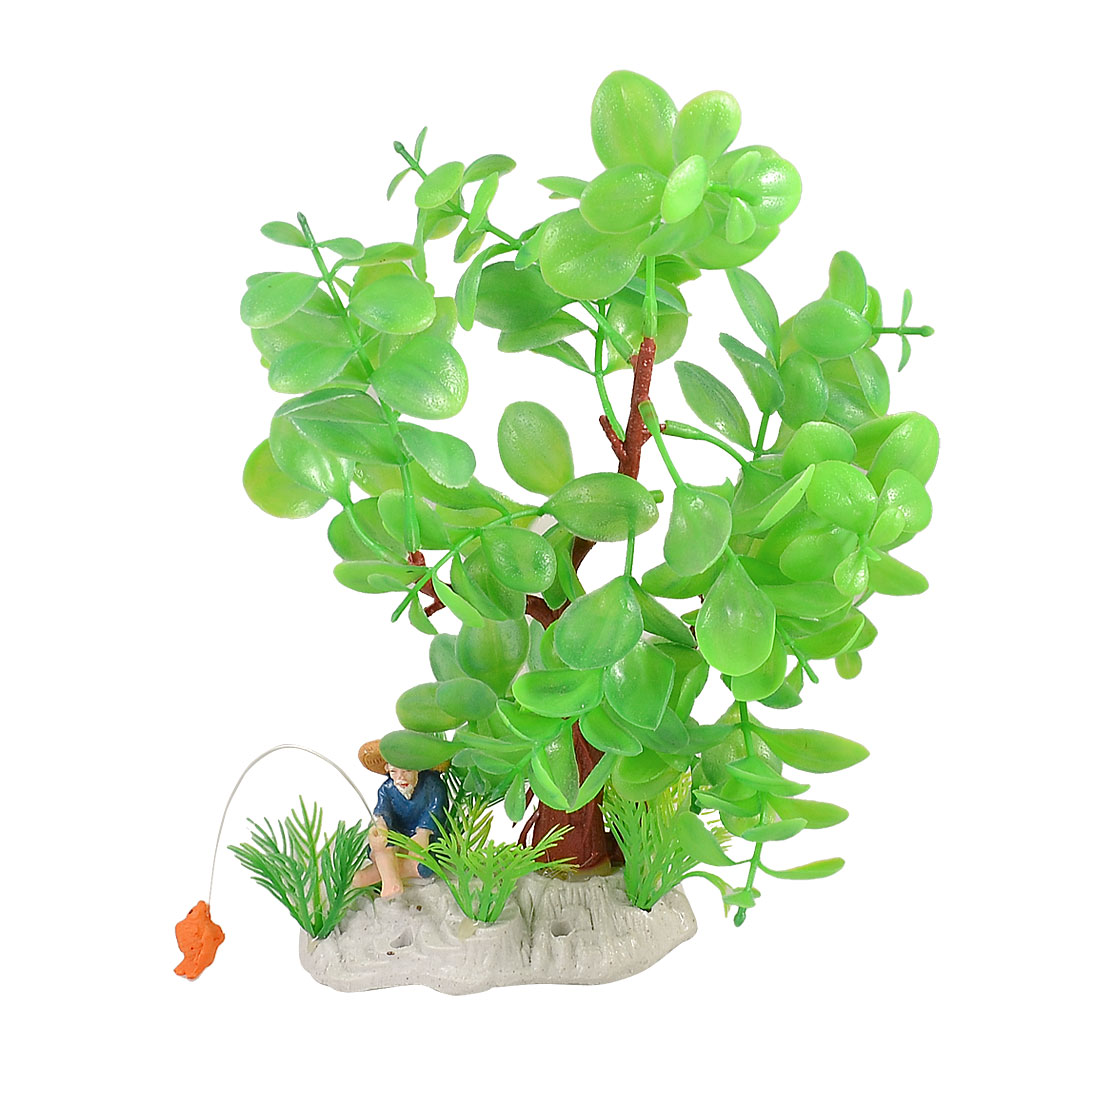 Aquarium Tank Lifelike Fisherman Decor Manmade Green Plastic Leaves Water Plant